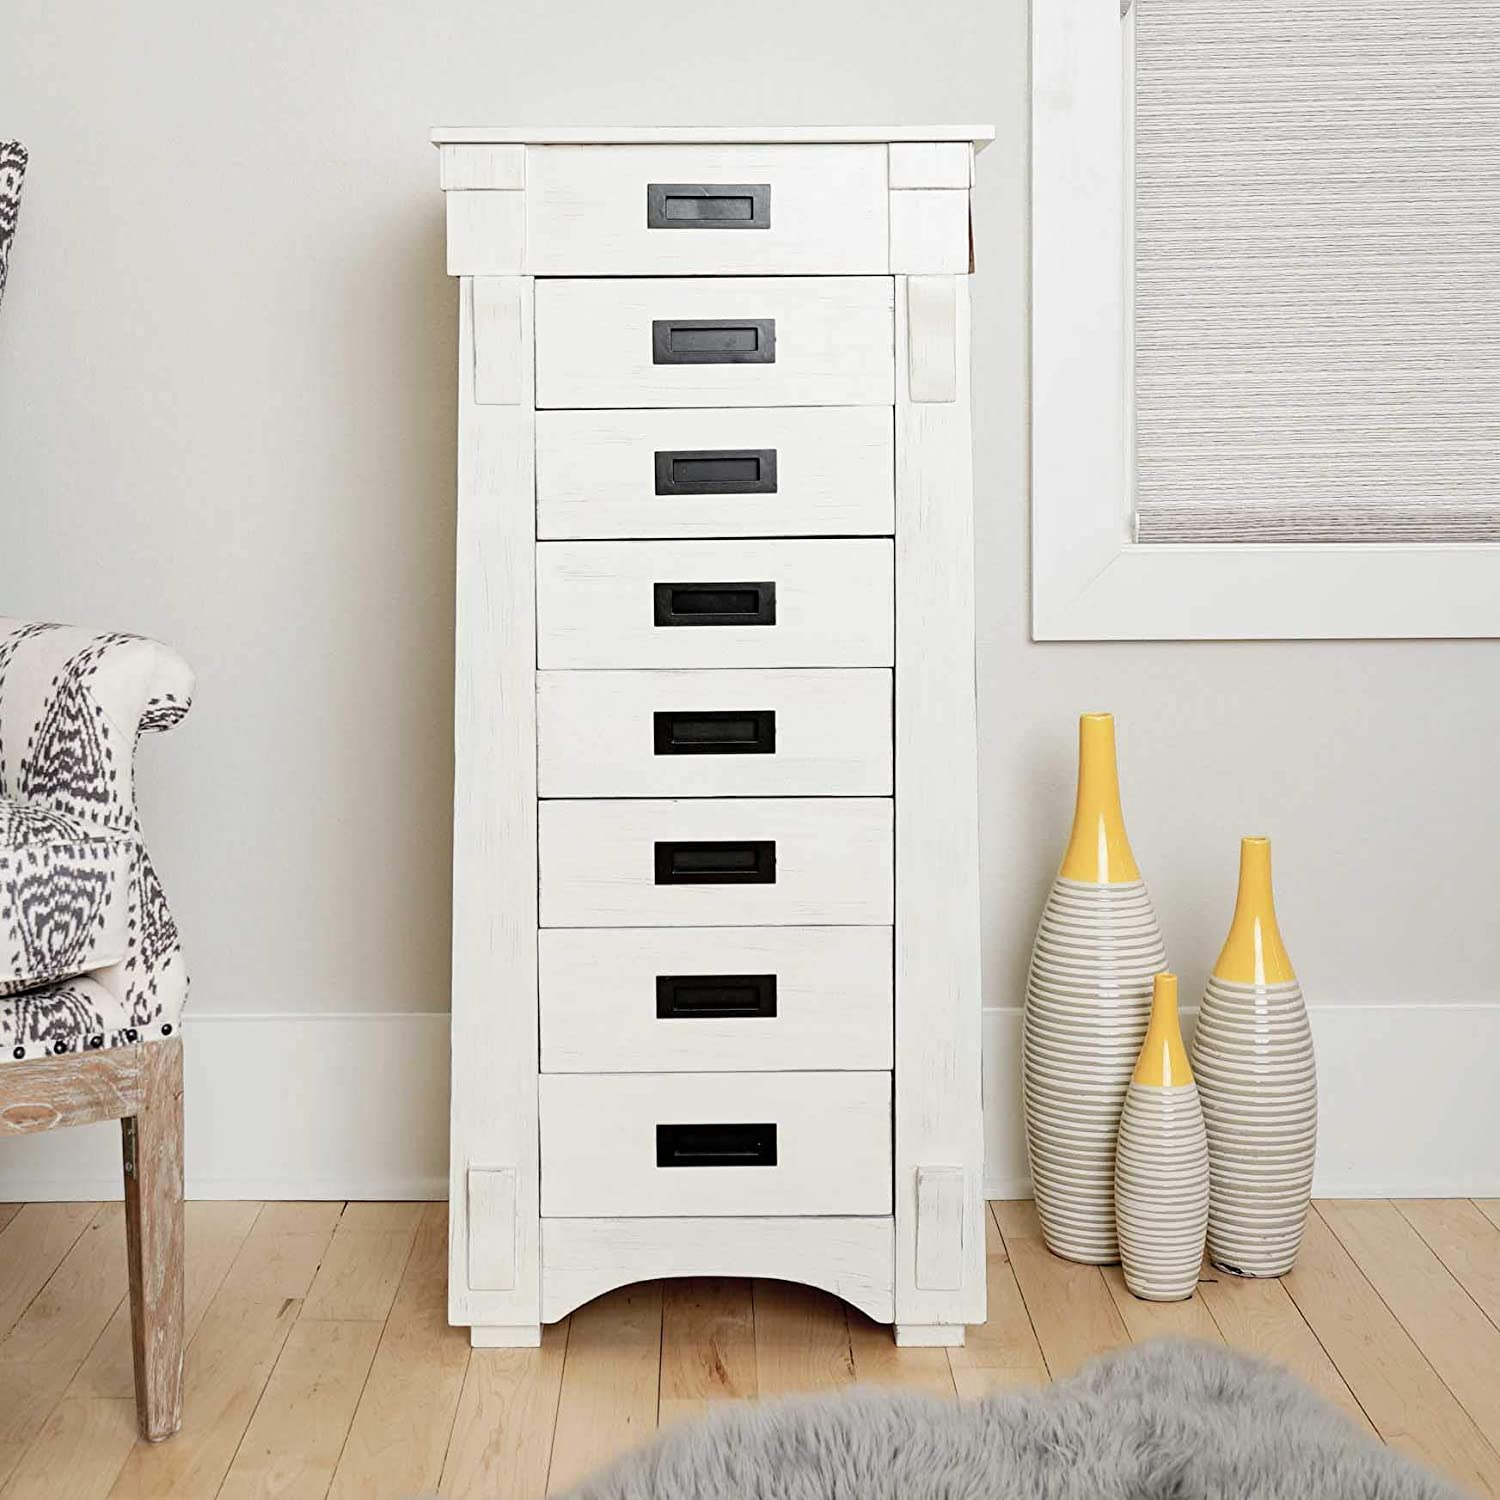 Hives and honey 6008 349 mission standing jewelry armoire white